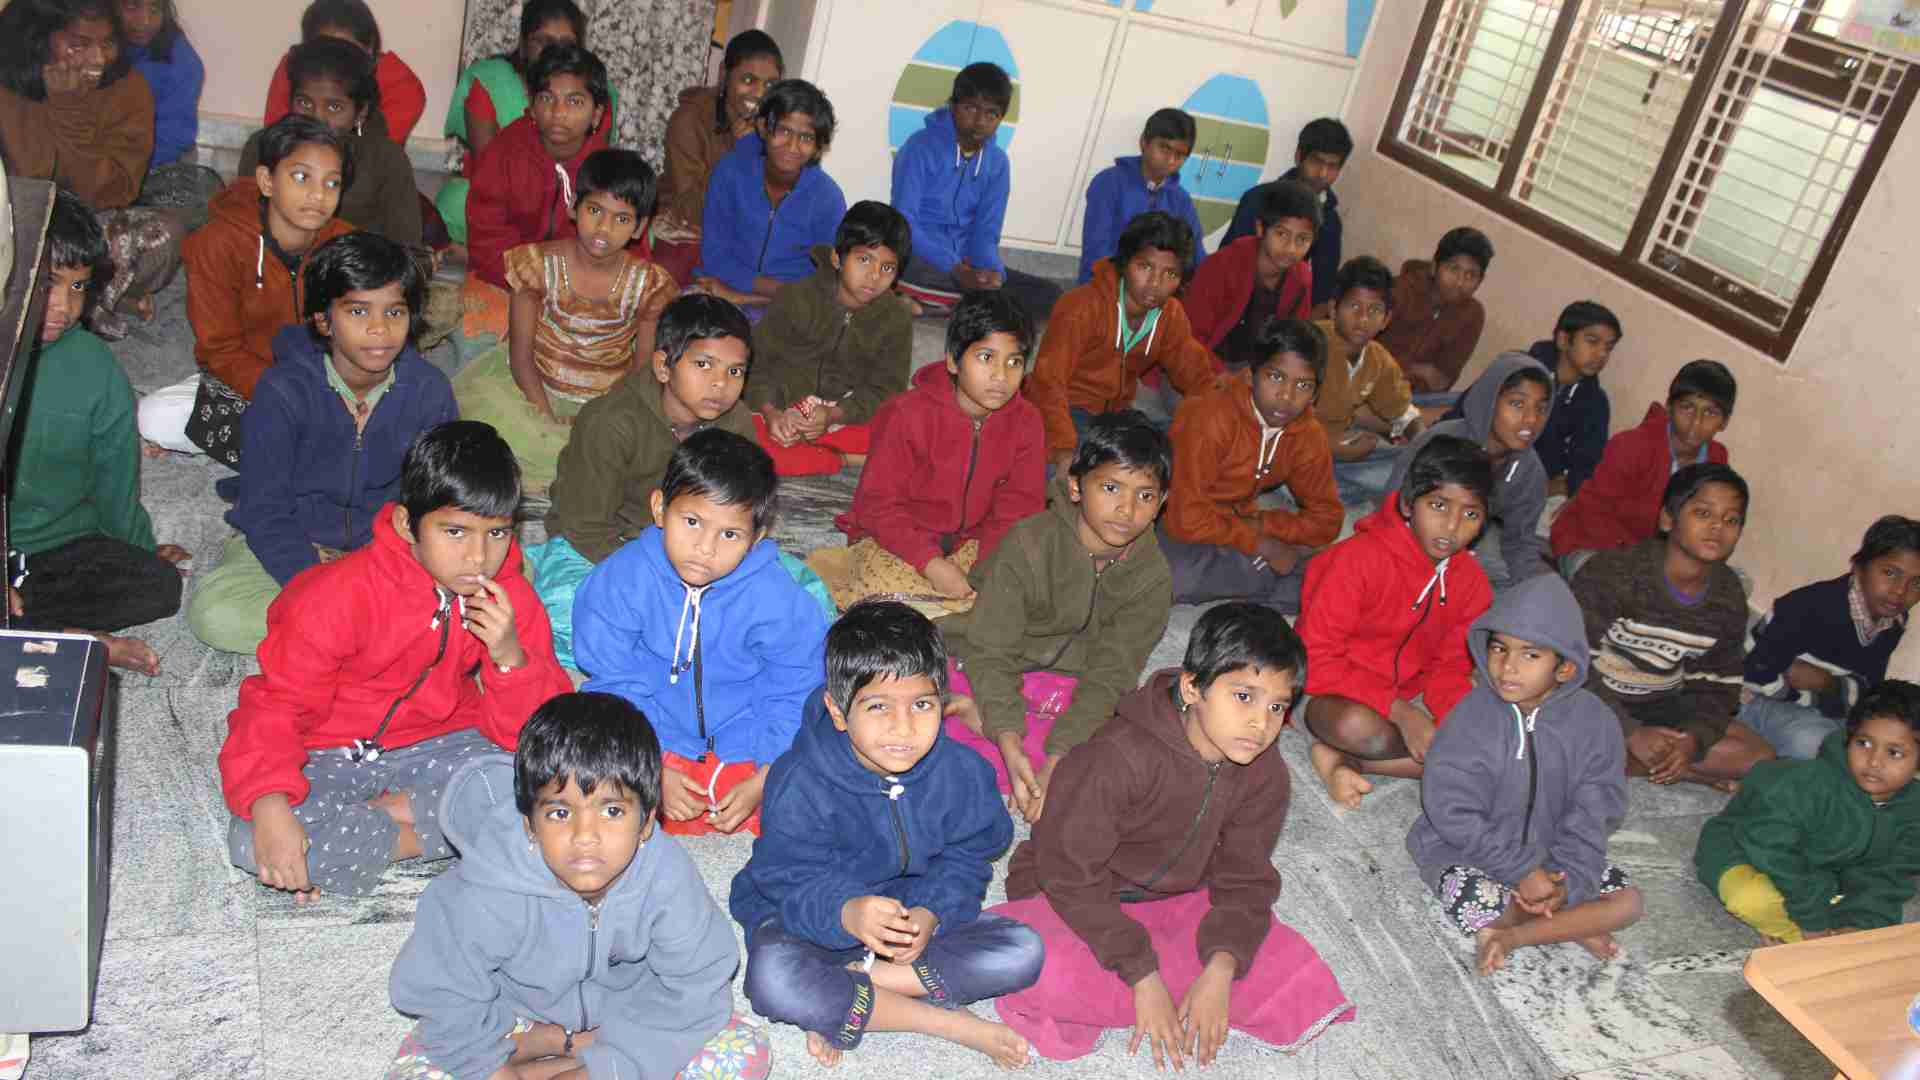 Donate to Disabilty Care Center to help poor children at SERUDS NGO